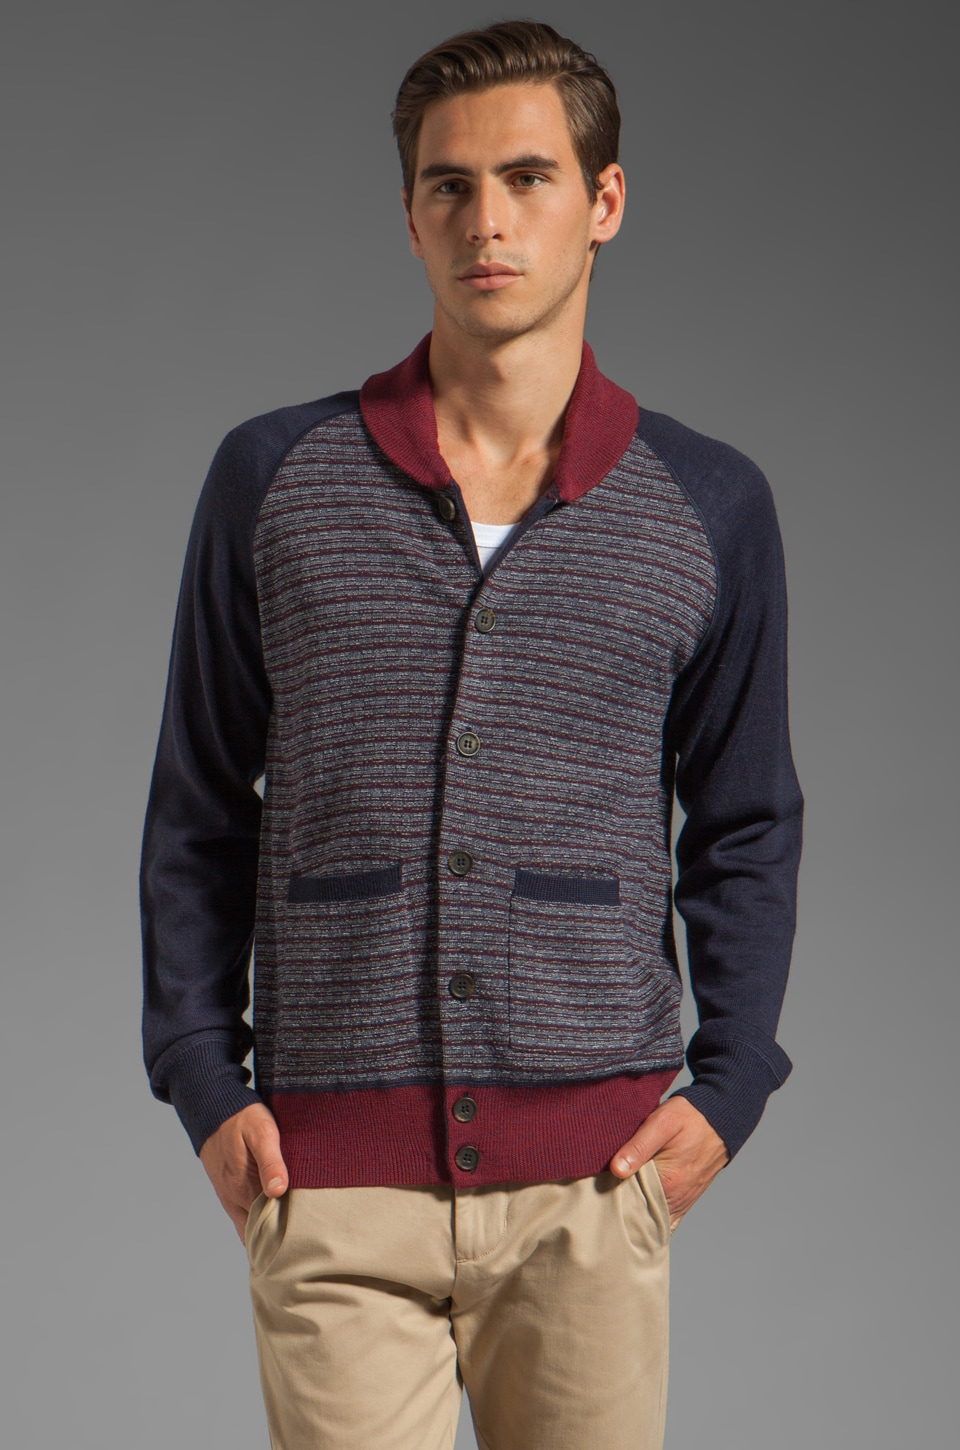 Vanishing Elephant Shawl Cardigan in Navy Speck